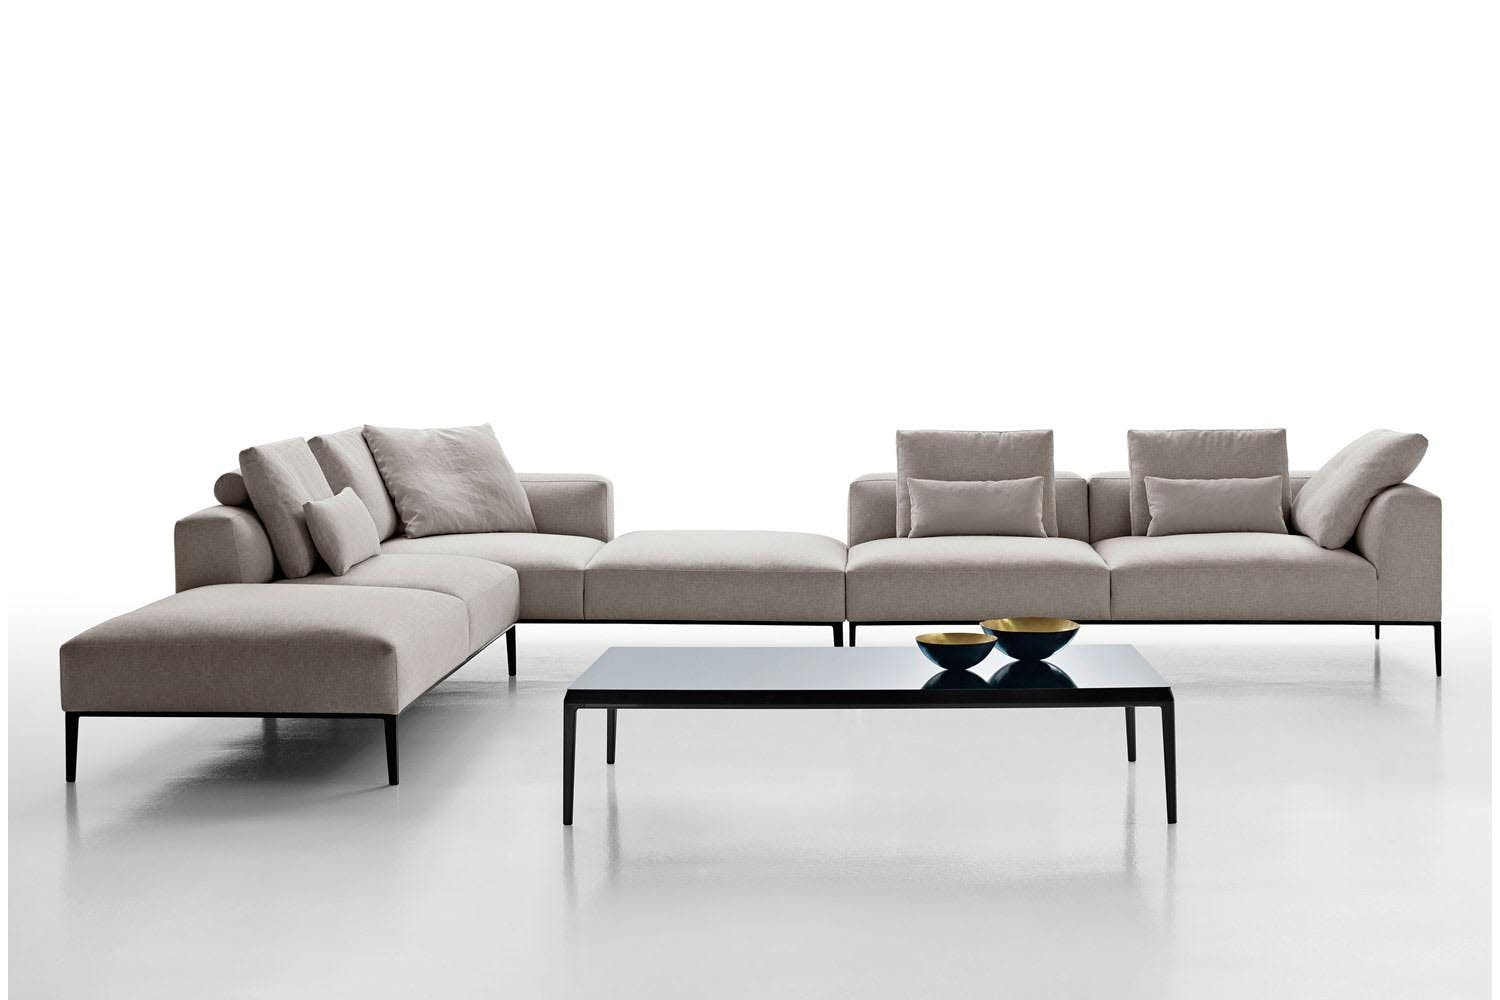 Michel effe sofa by antonio citterio for b b italia for B and b divani